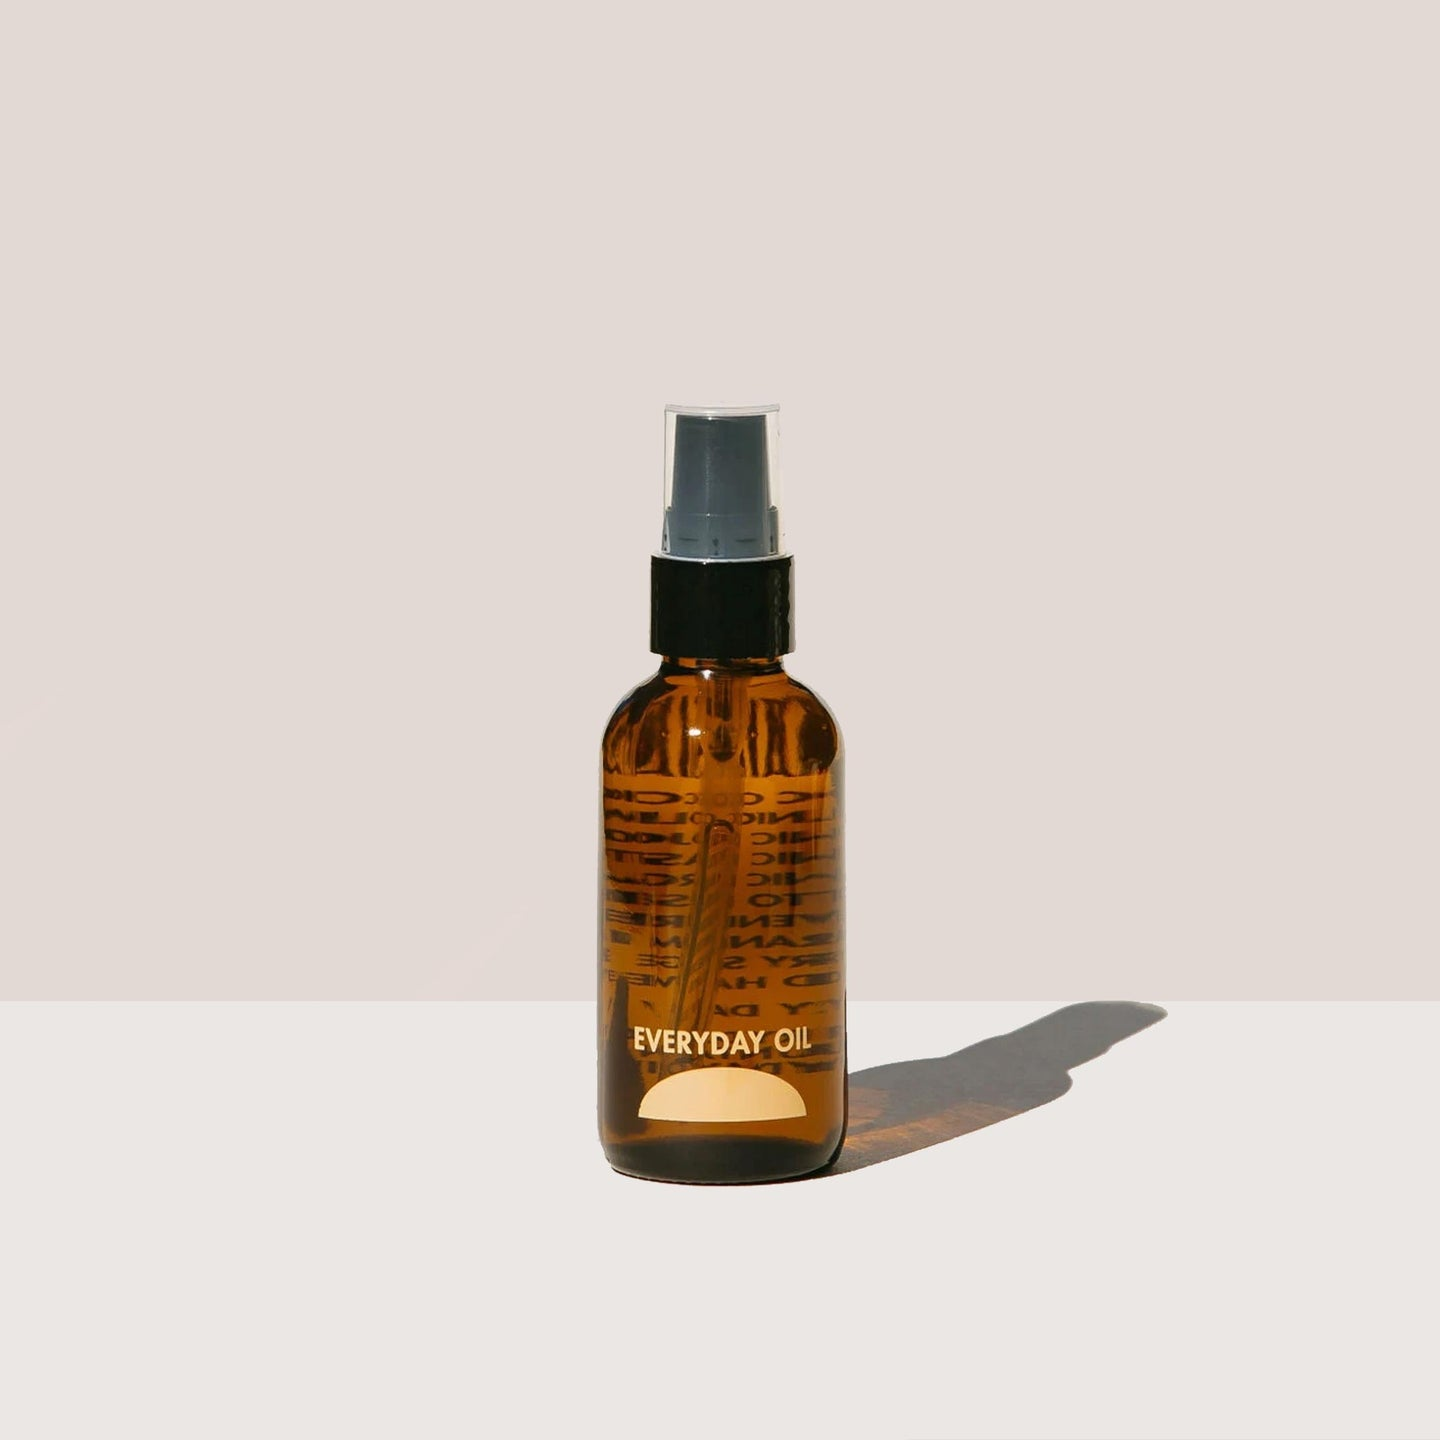 Everyday Oil - 2oz Bottle, available at LCD.